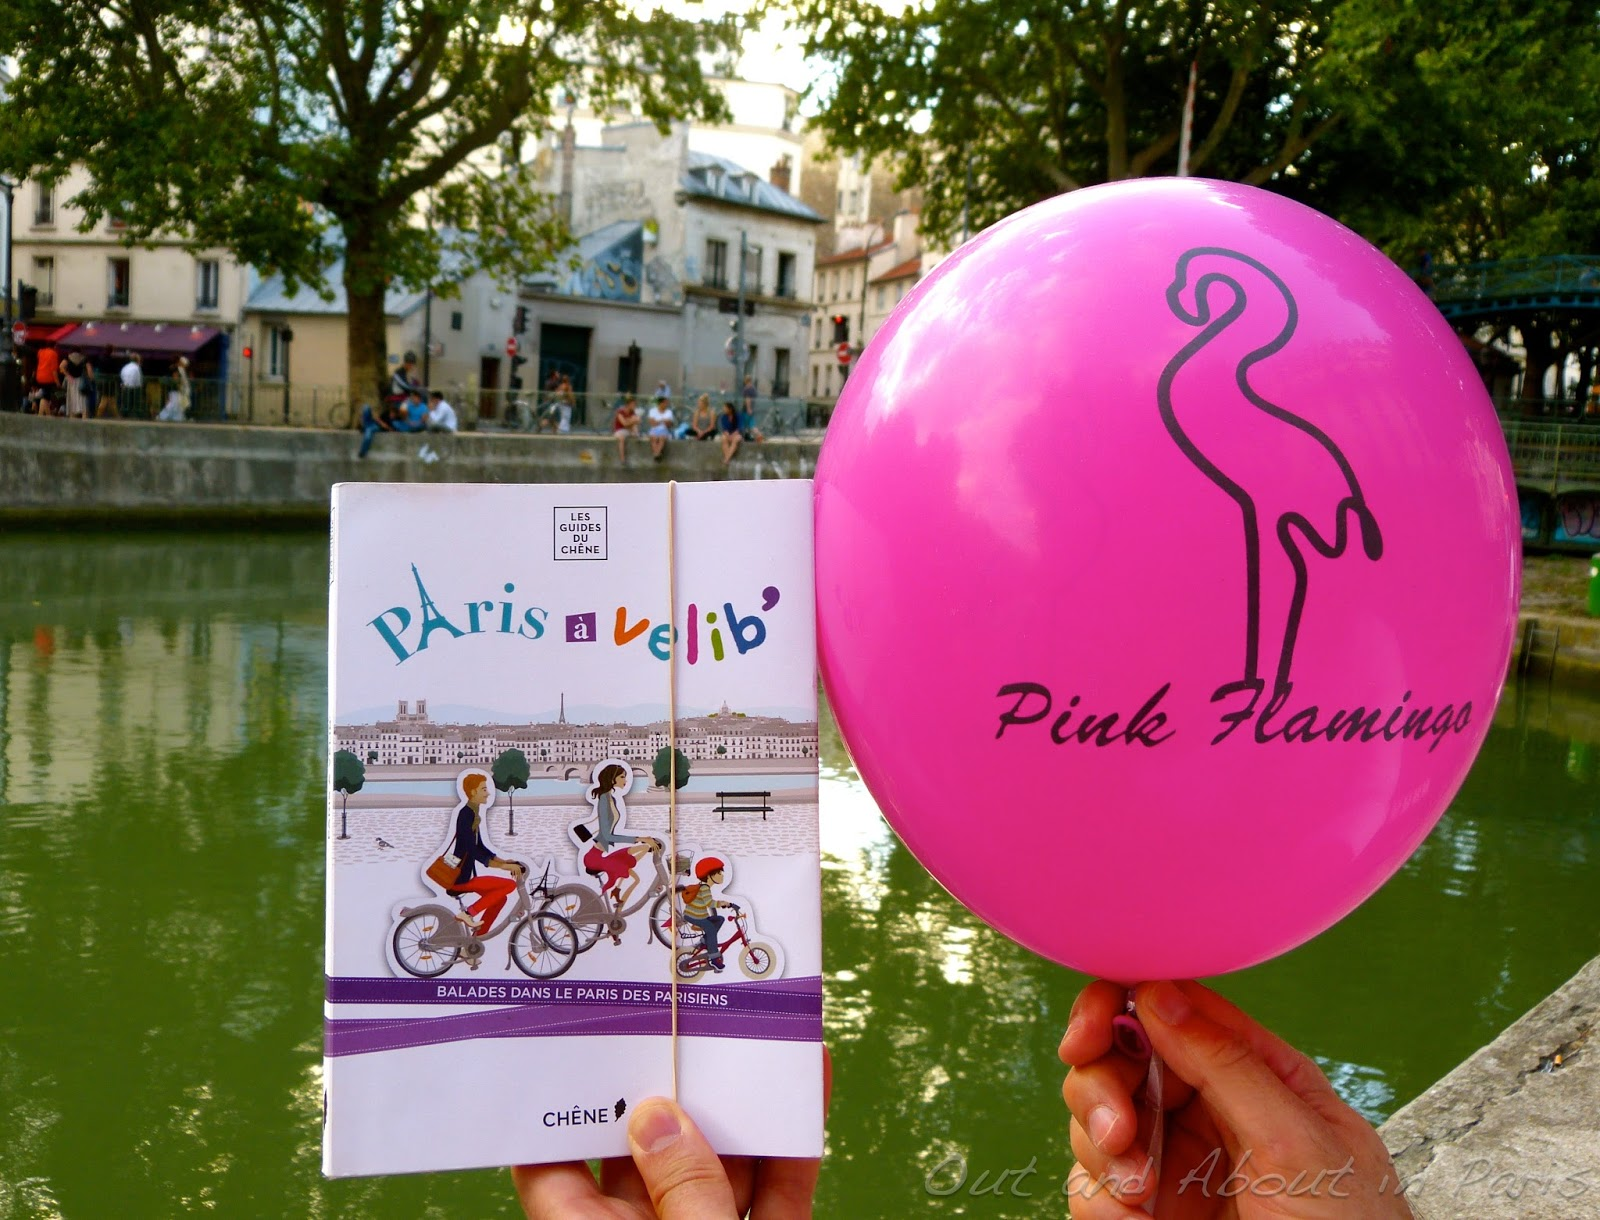 Terrasse Canal Saint Martin pink flamingo pizza delivered to your picnic at the canal